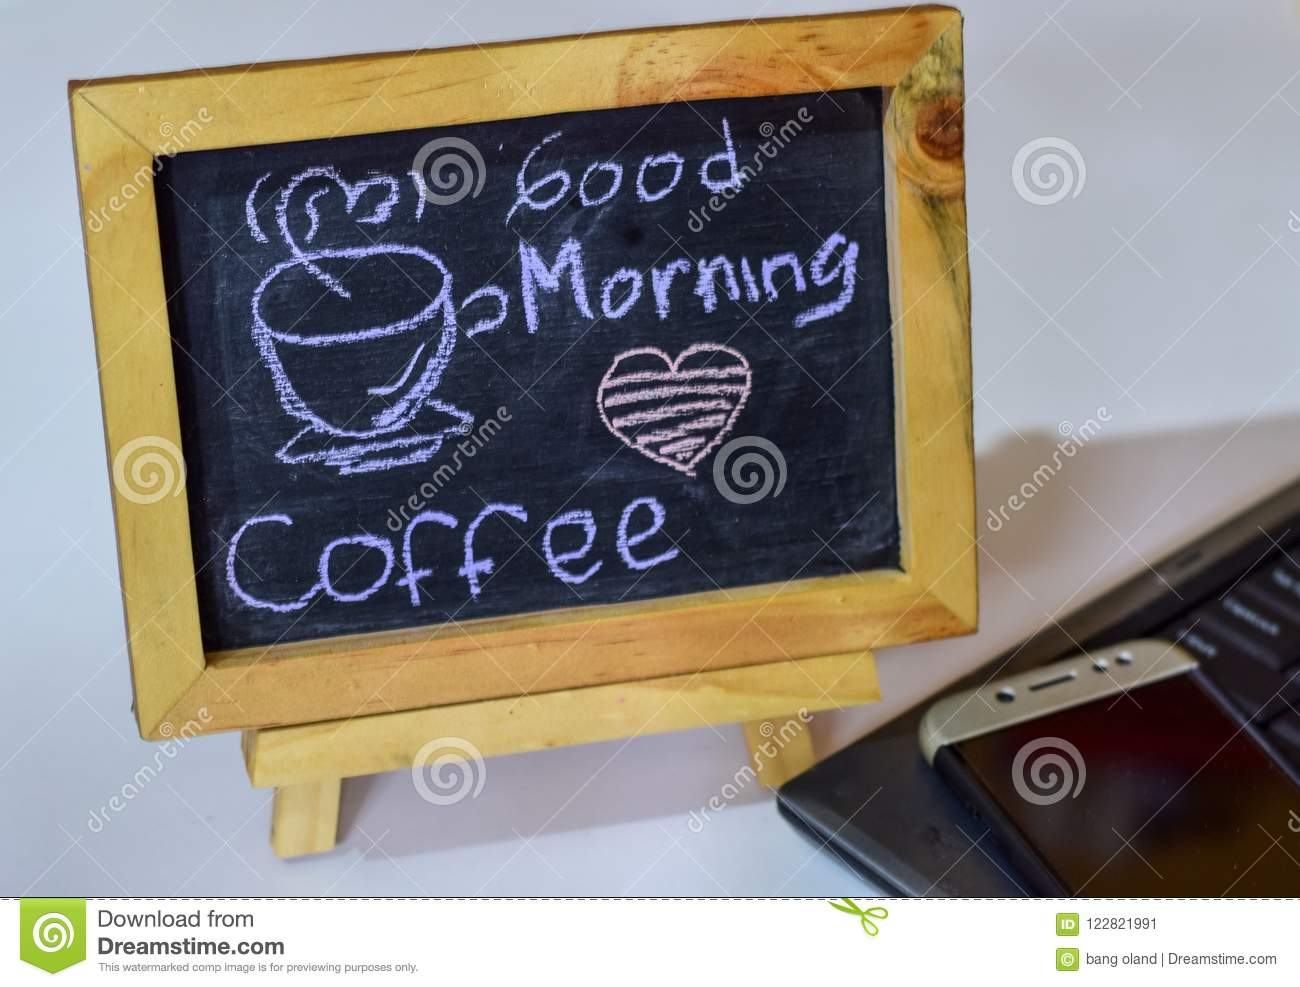 Phrase Good Morning coffee written on a chalkboard on it and smartphone, laptop